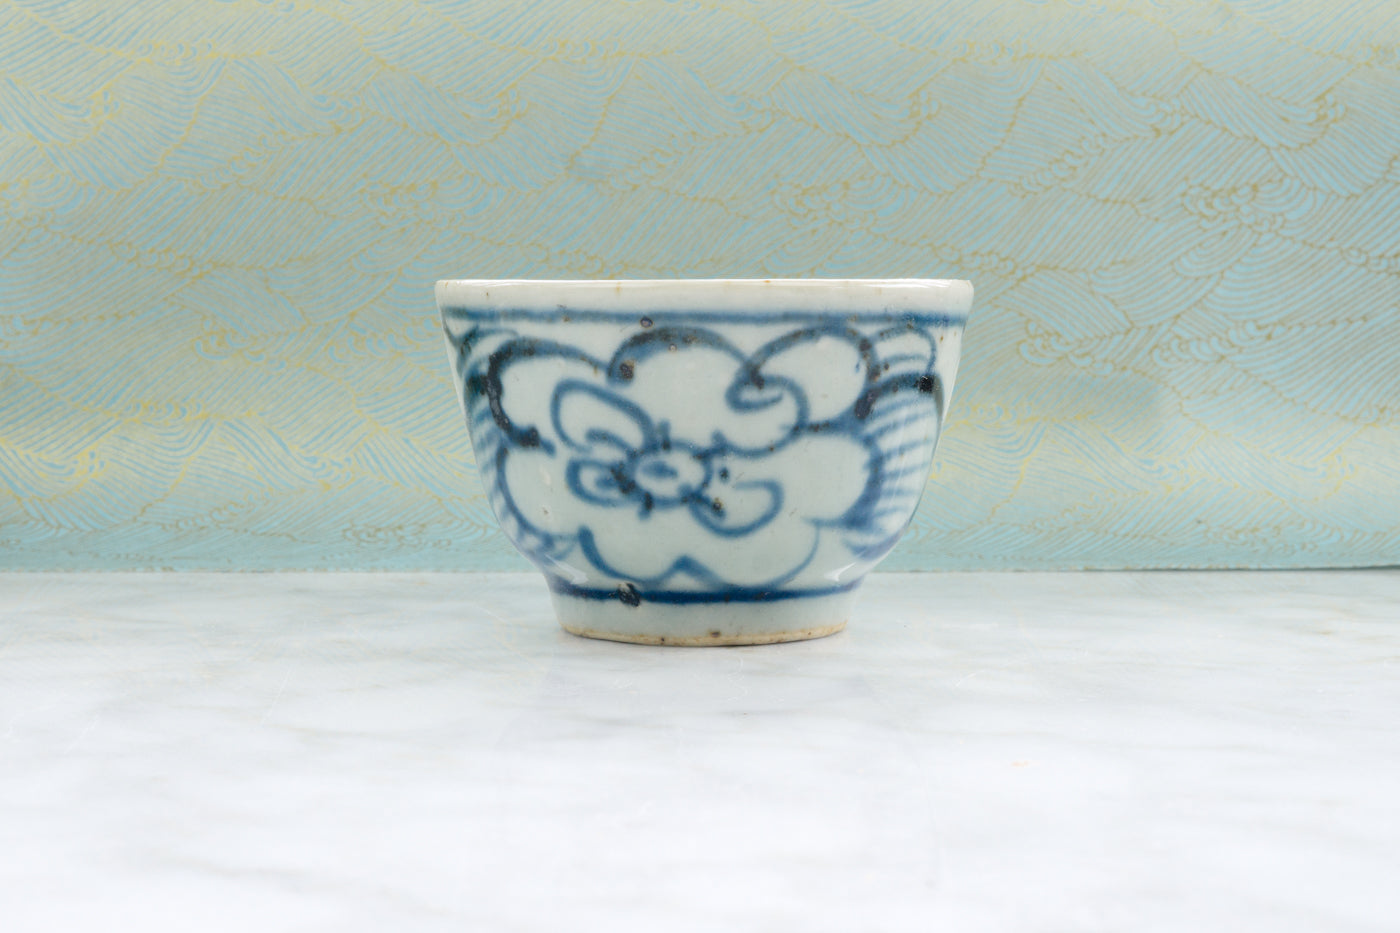 Qing Dynasty Style Iron Flecked Teacup with Persimmon